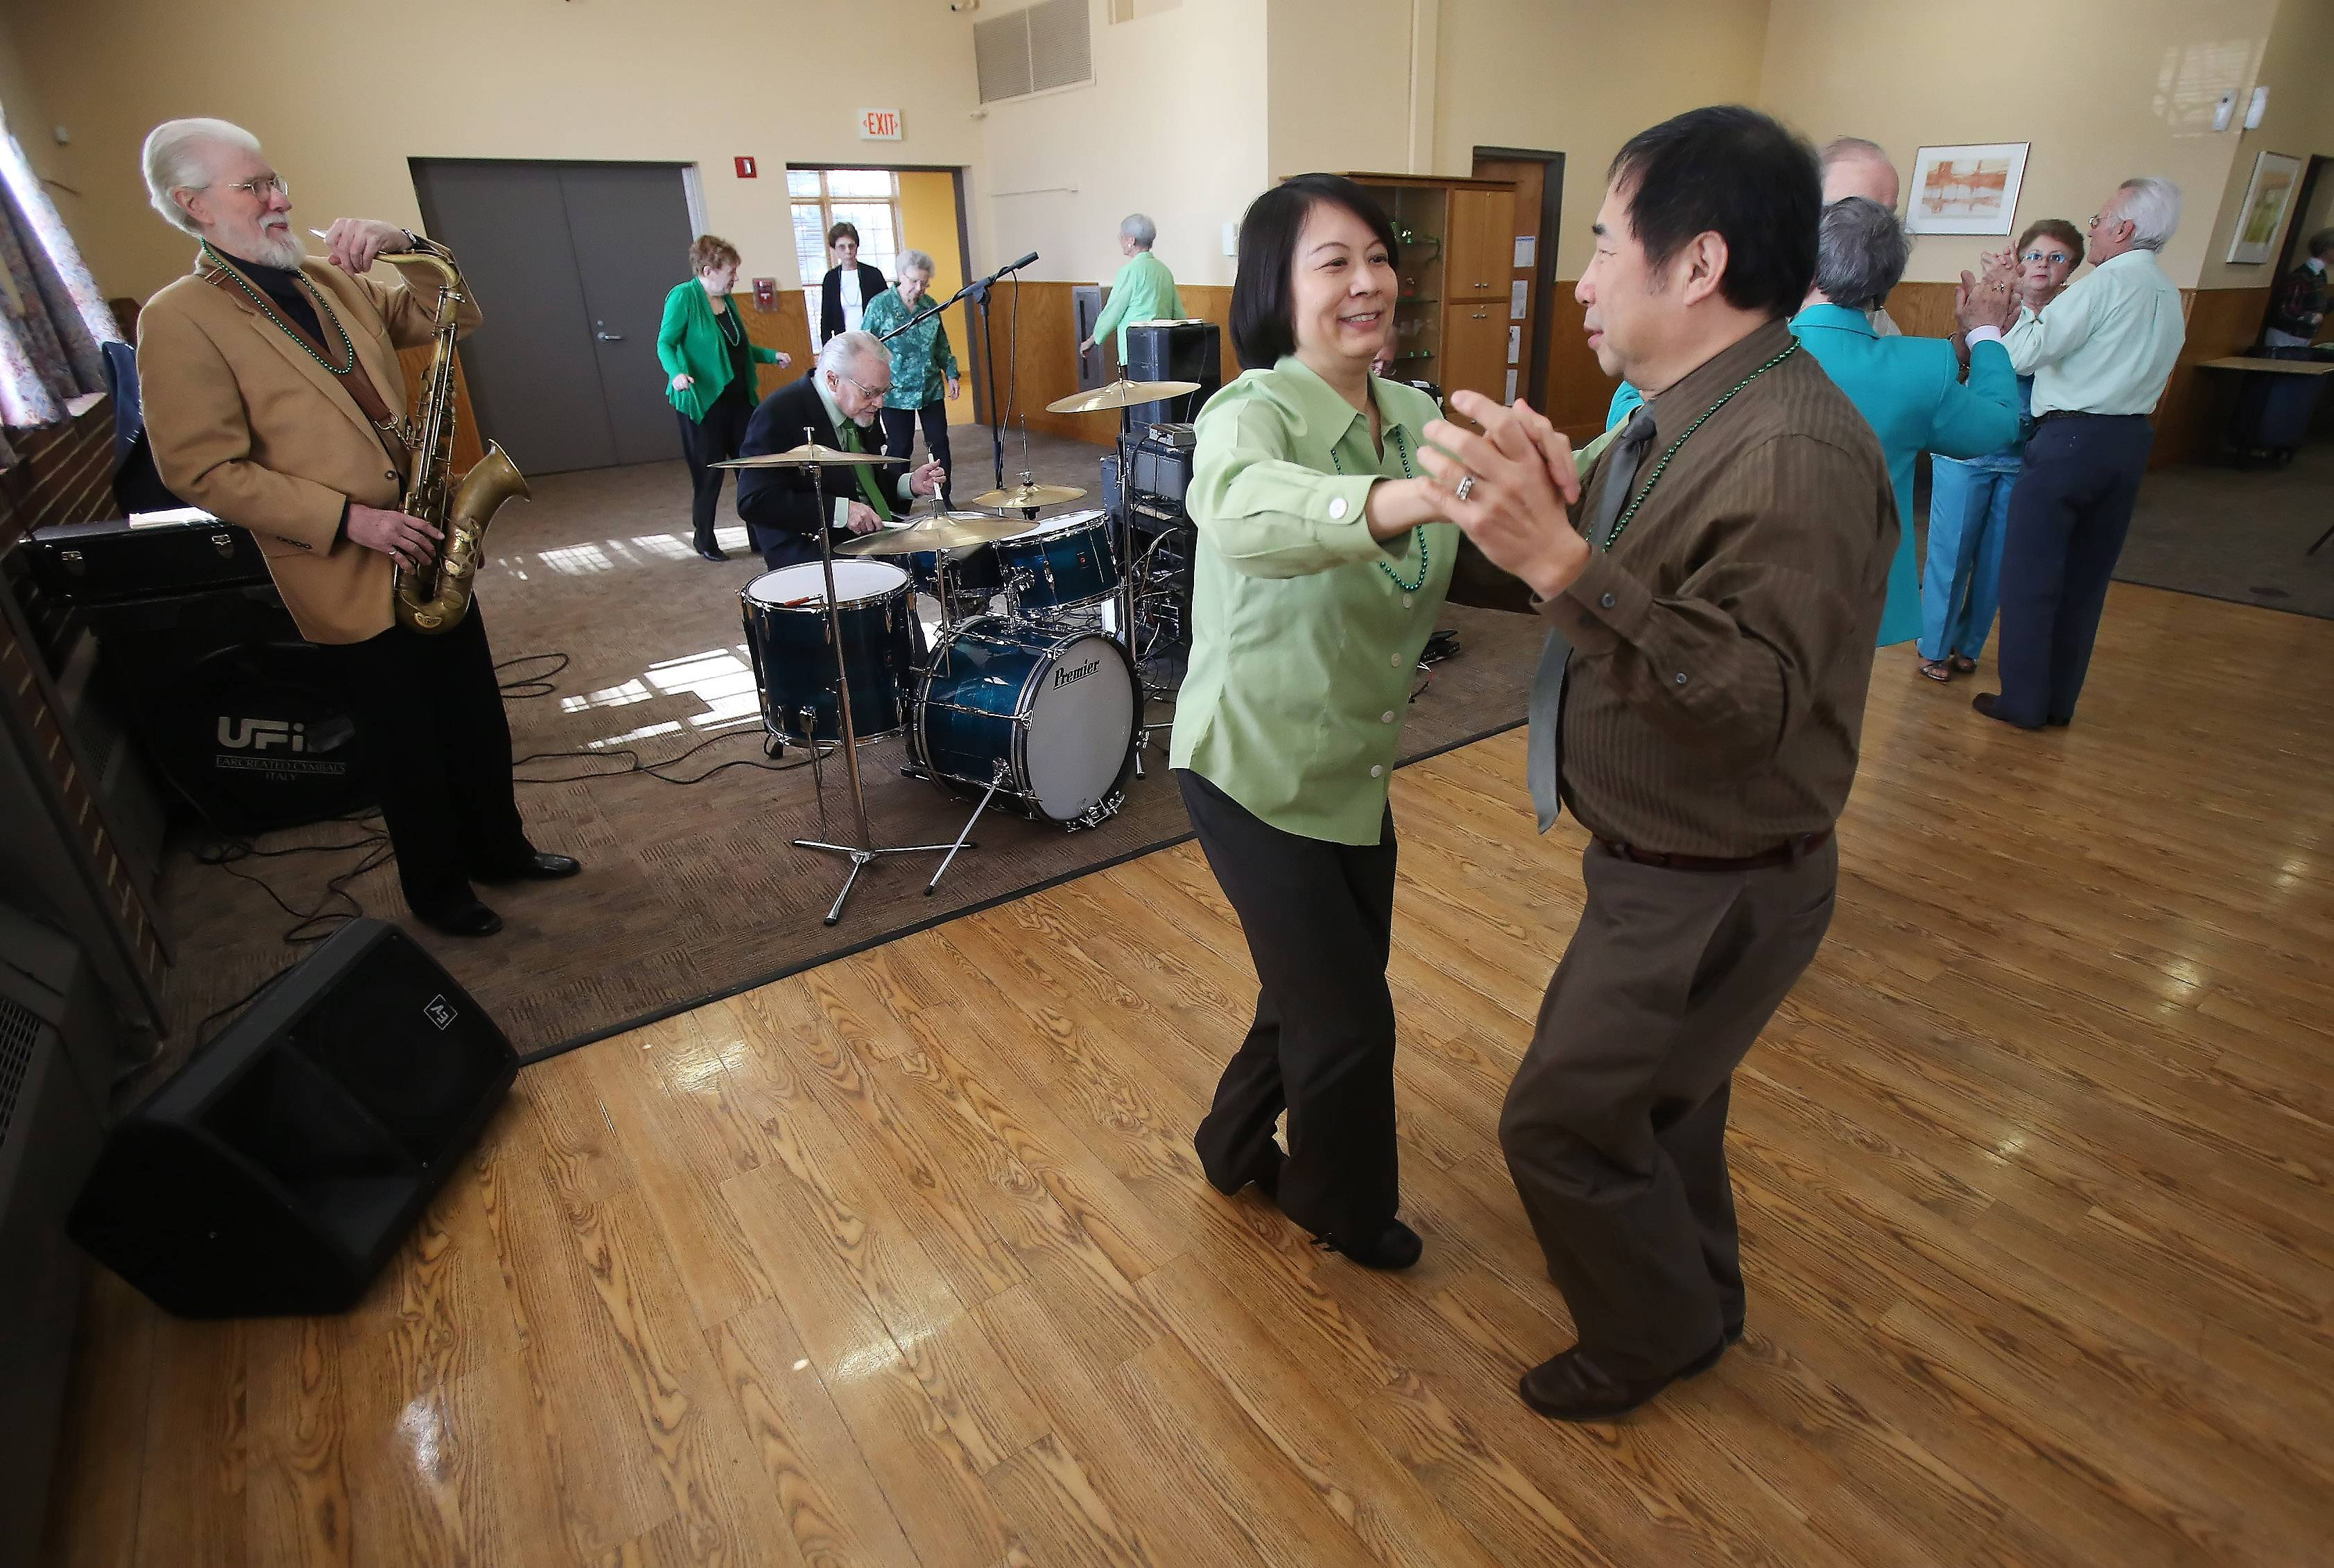 Frank and Sue Bing of Buffalo Grove dance to the music of The Ron Barron Trio during Monday's St. Patrick's Day Party hosted by the Libertyville Senior Center. The event featured an Irish lunch of corned beef and cabbage and dancing to traditional Irish music.